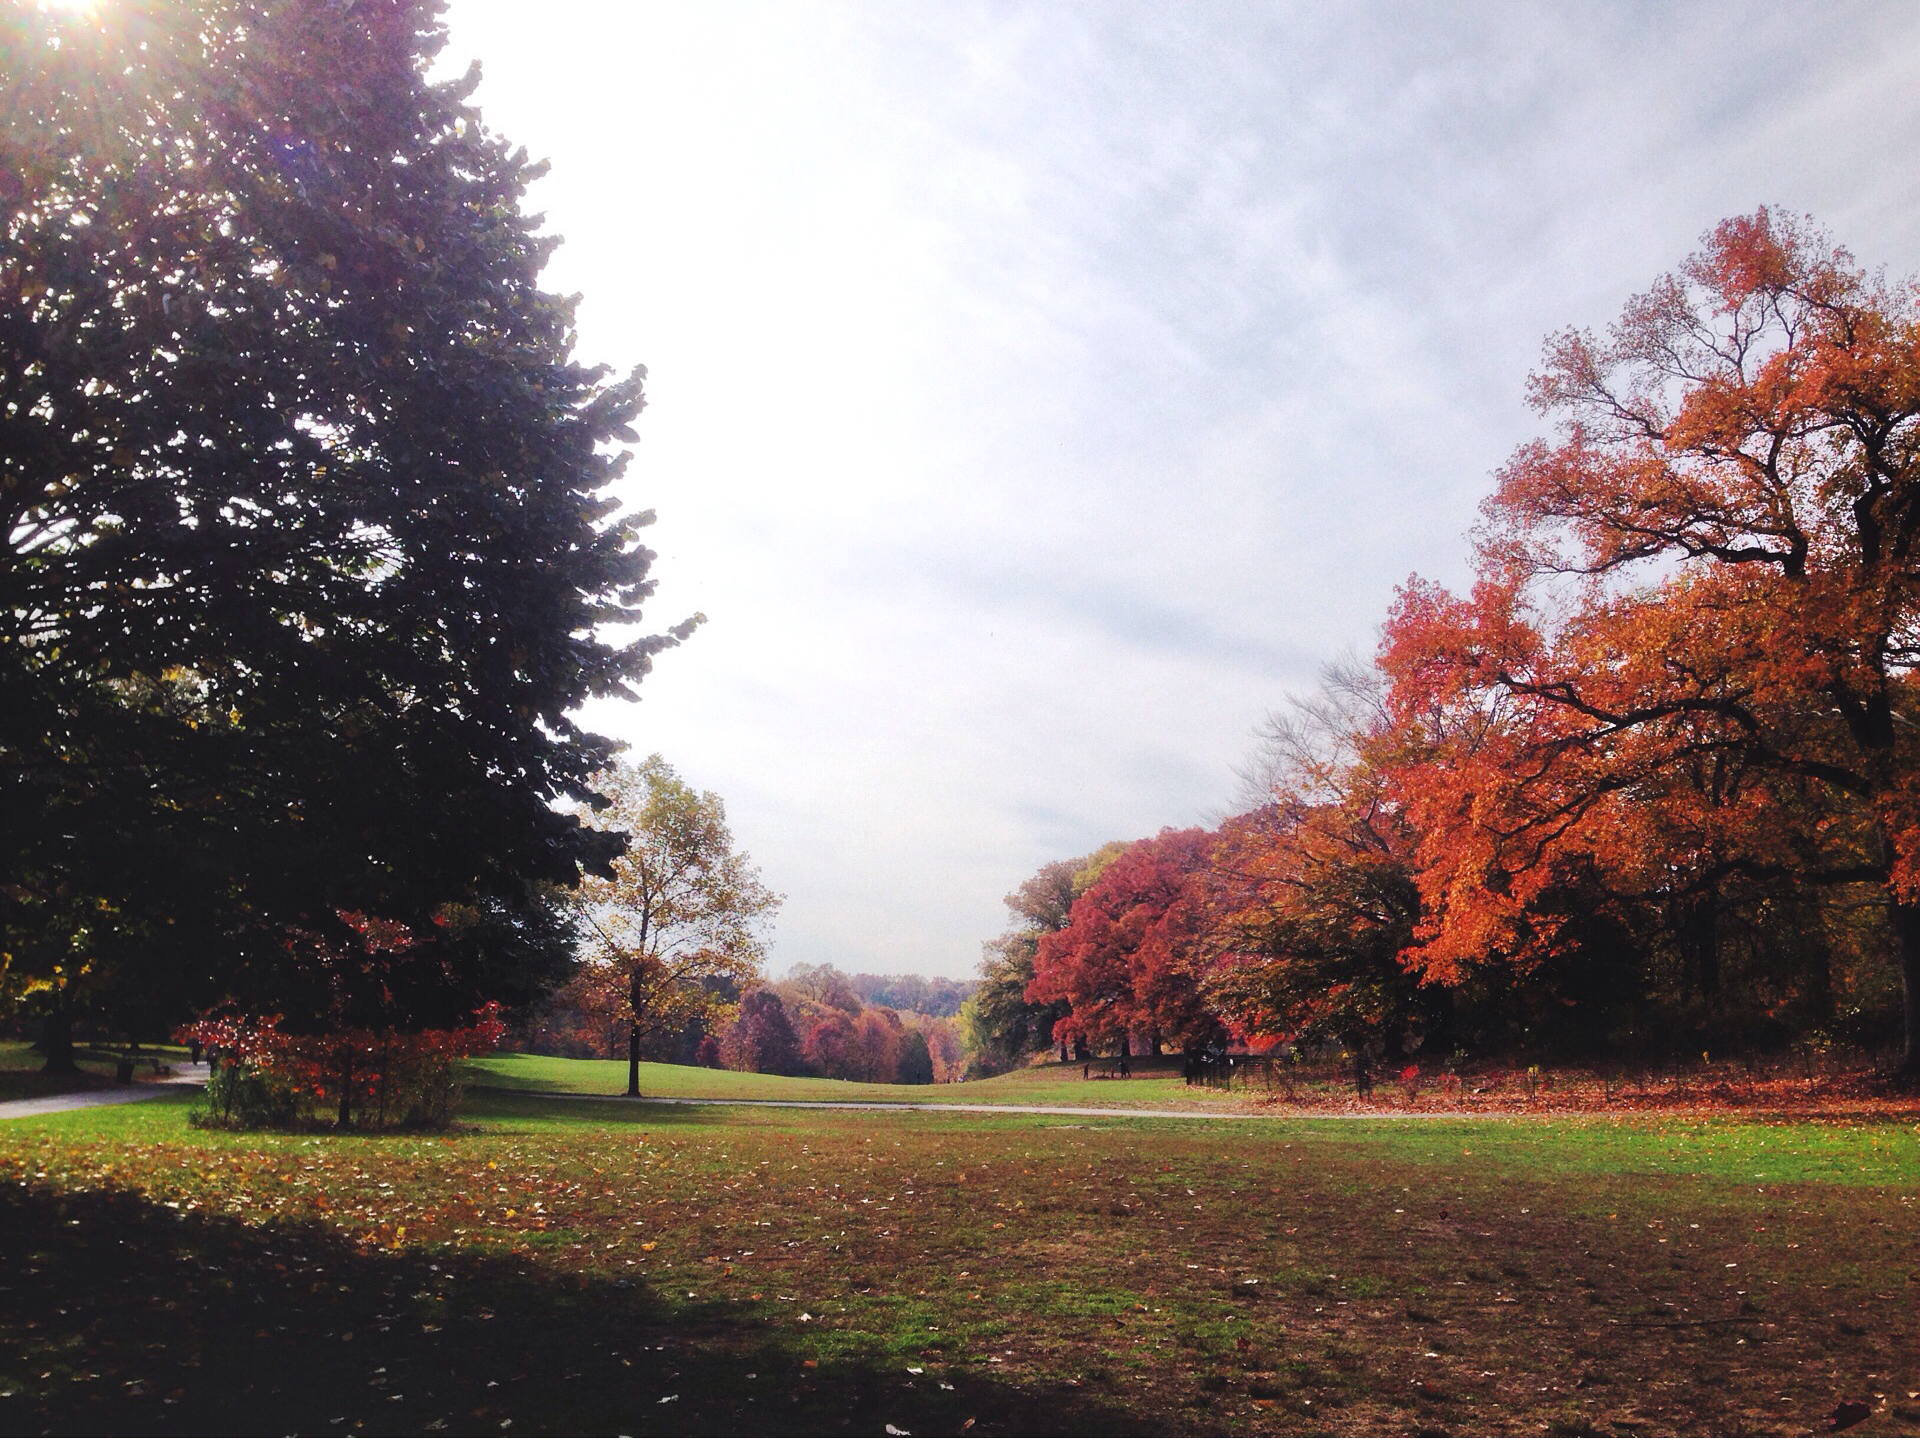 Prospect Park Fall of 2014 - Photo by: Lauren L Caorn